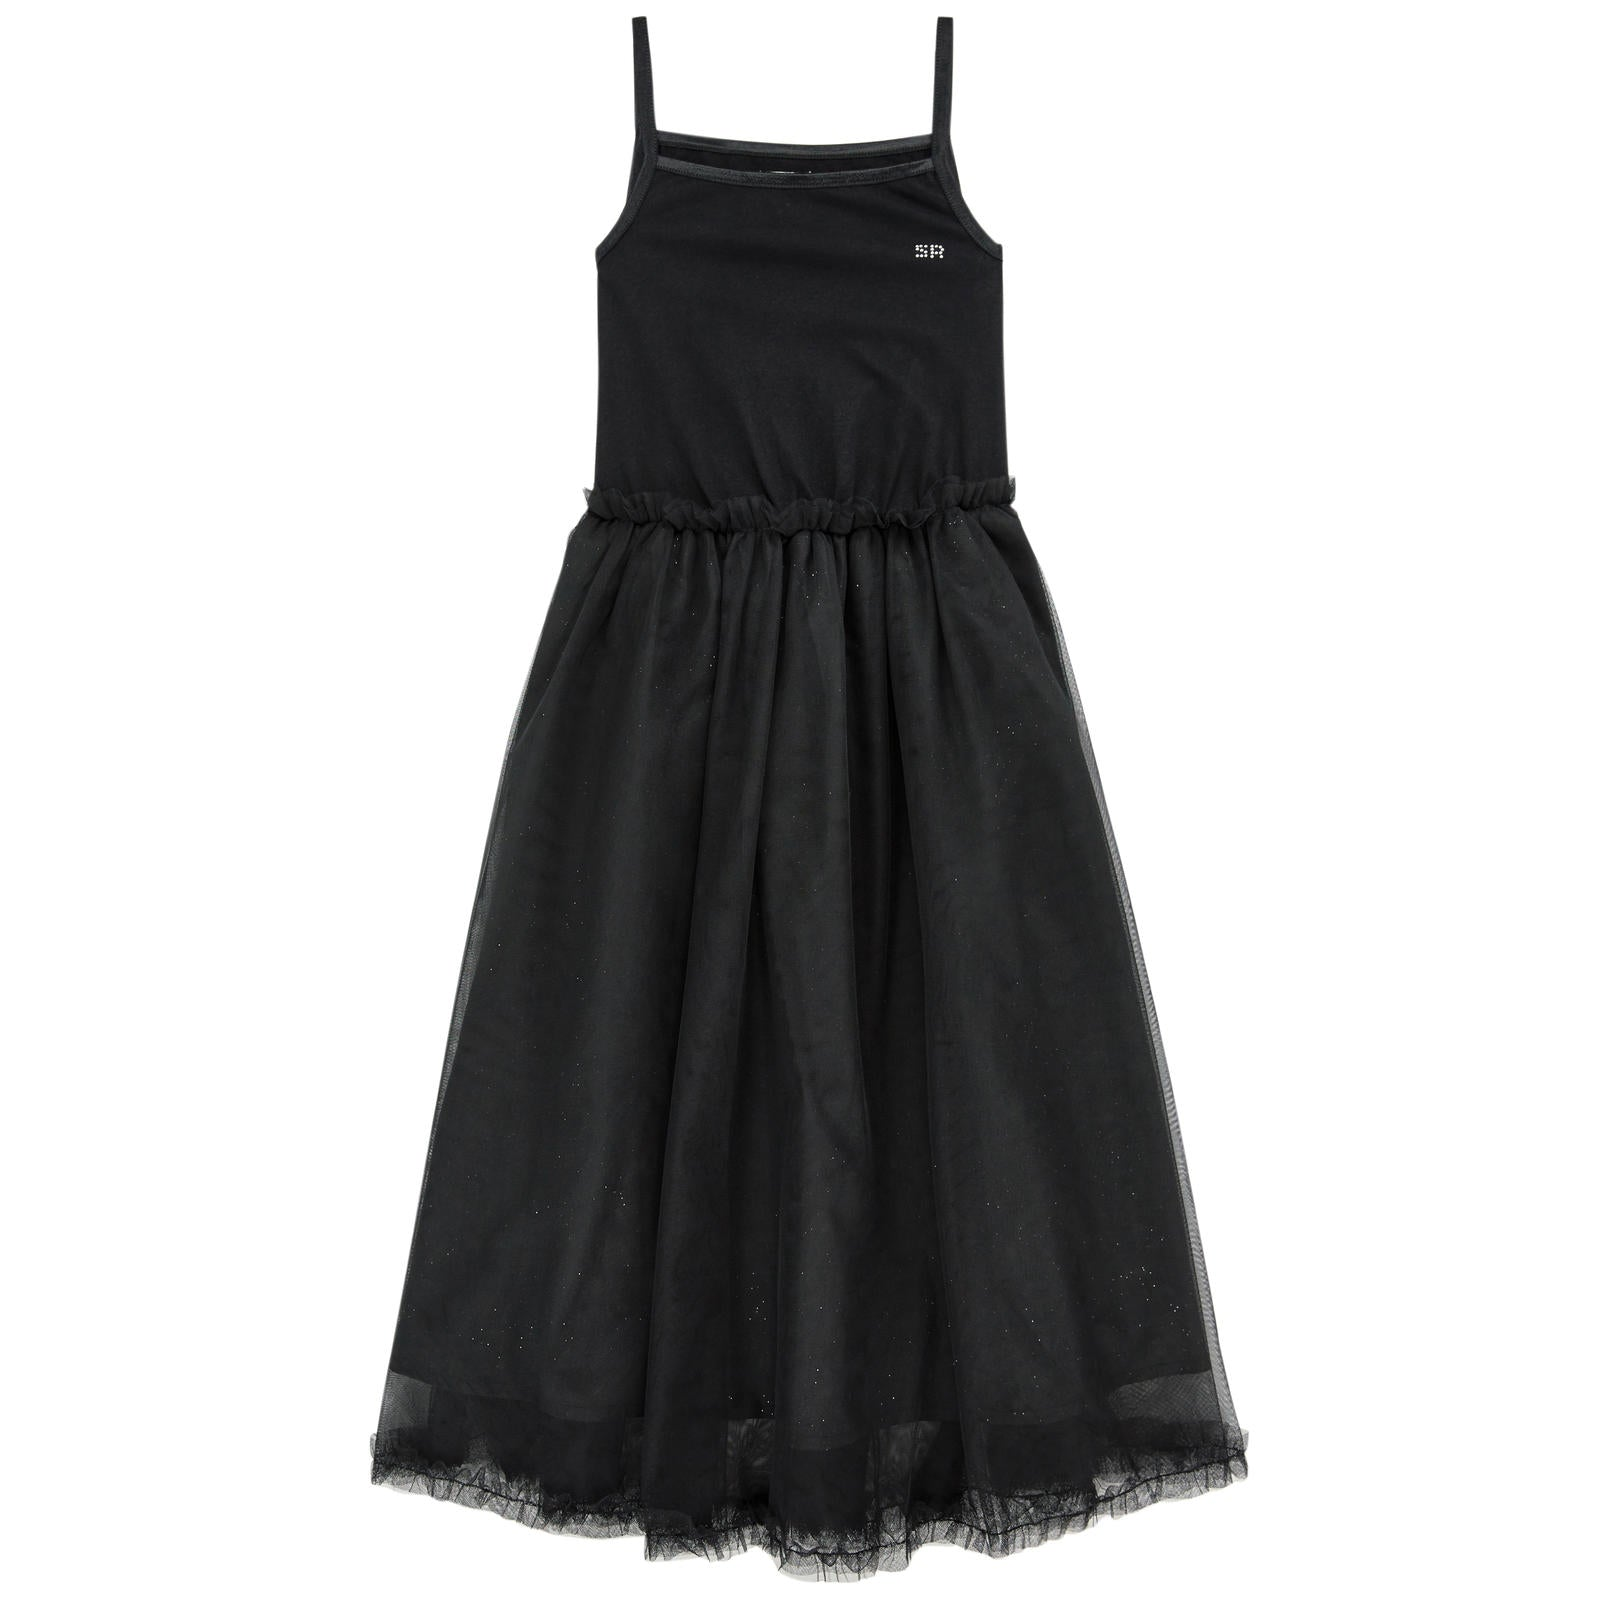 62f3f5df985 Sonia Rykiel Black Tulle Maxi Dress